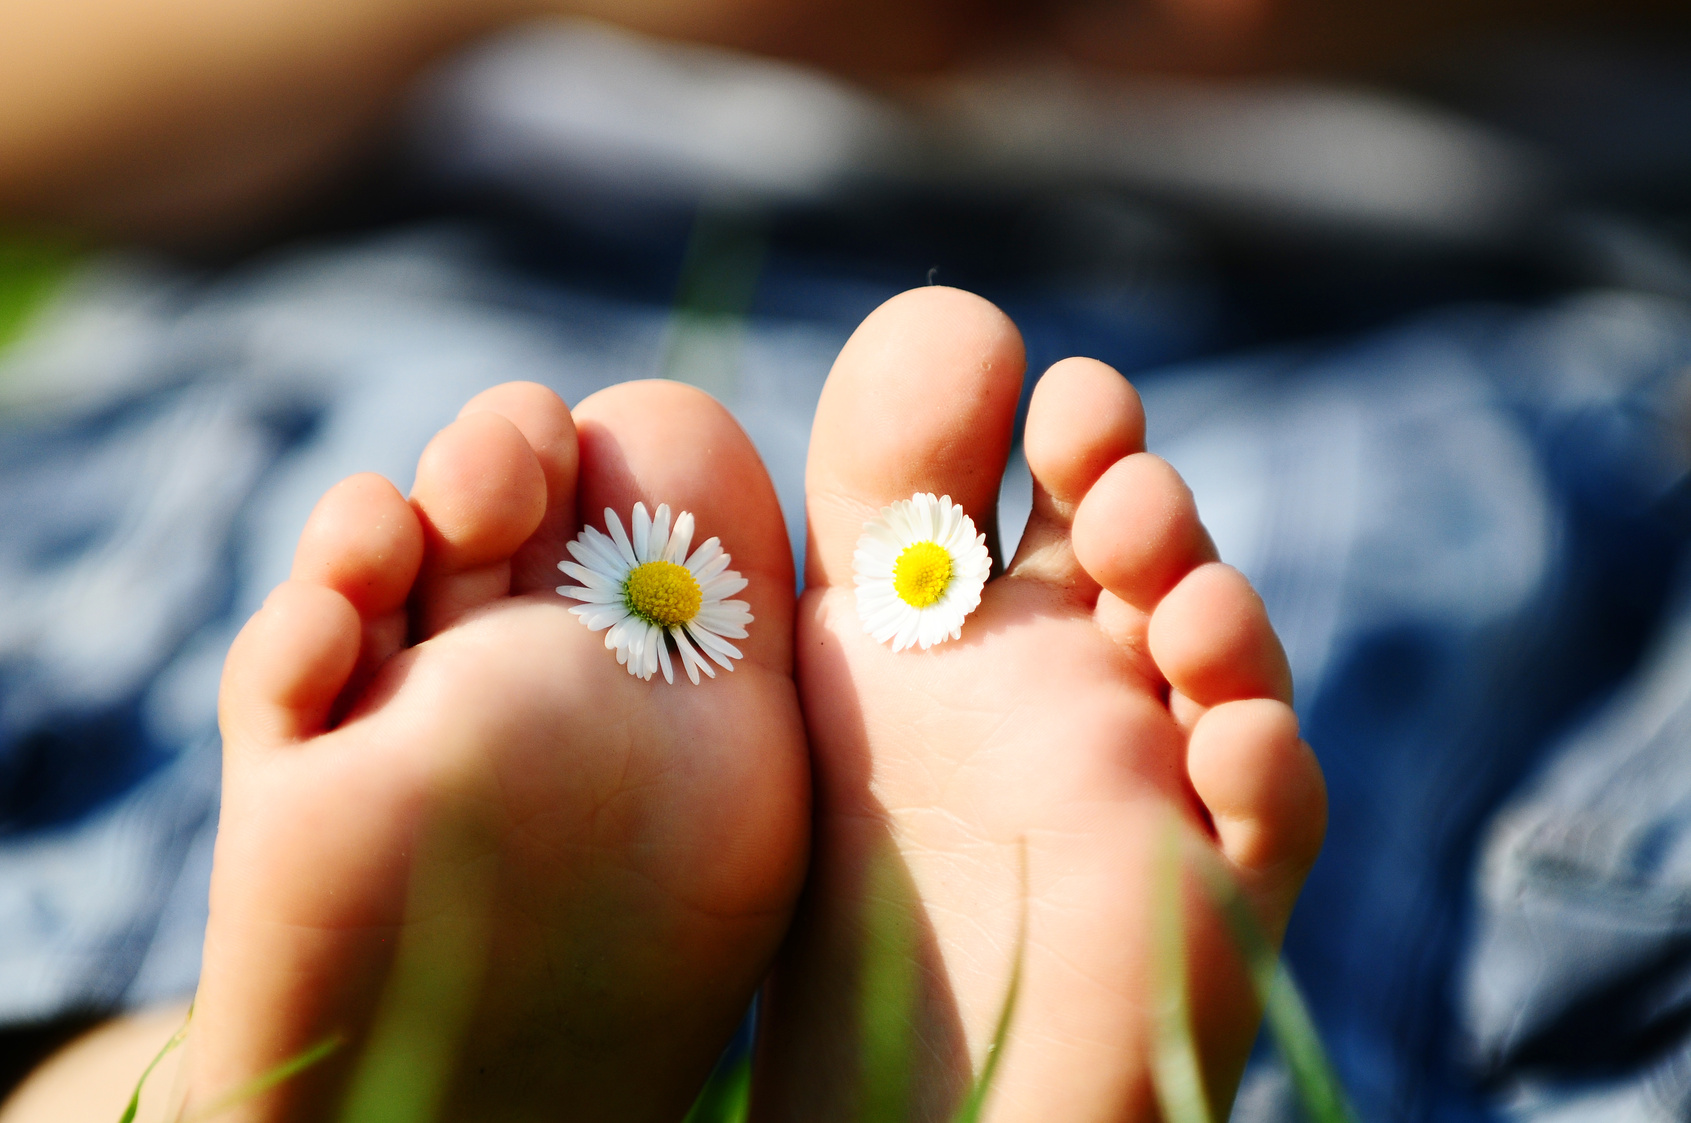 Flower power feet